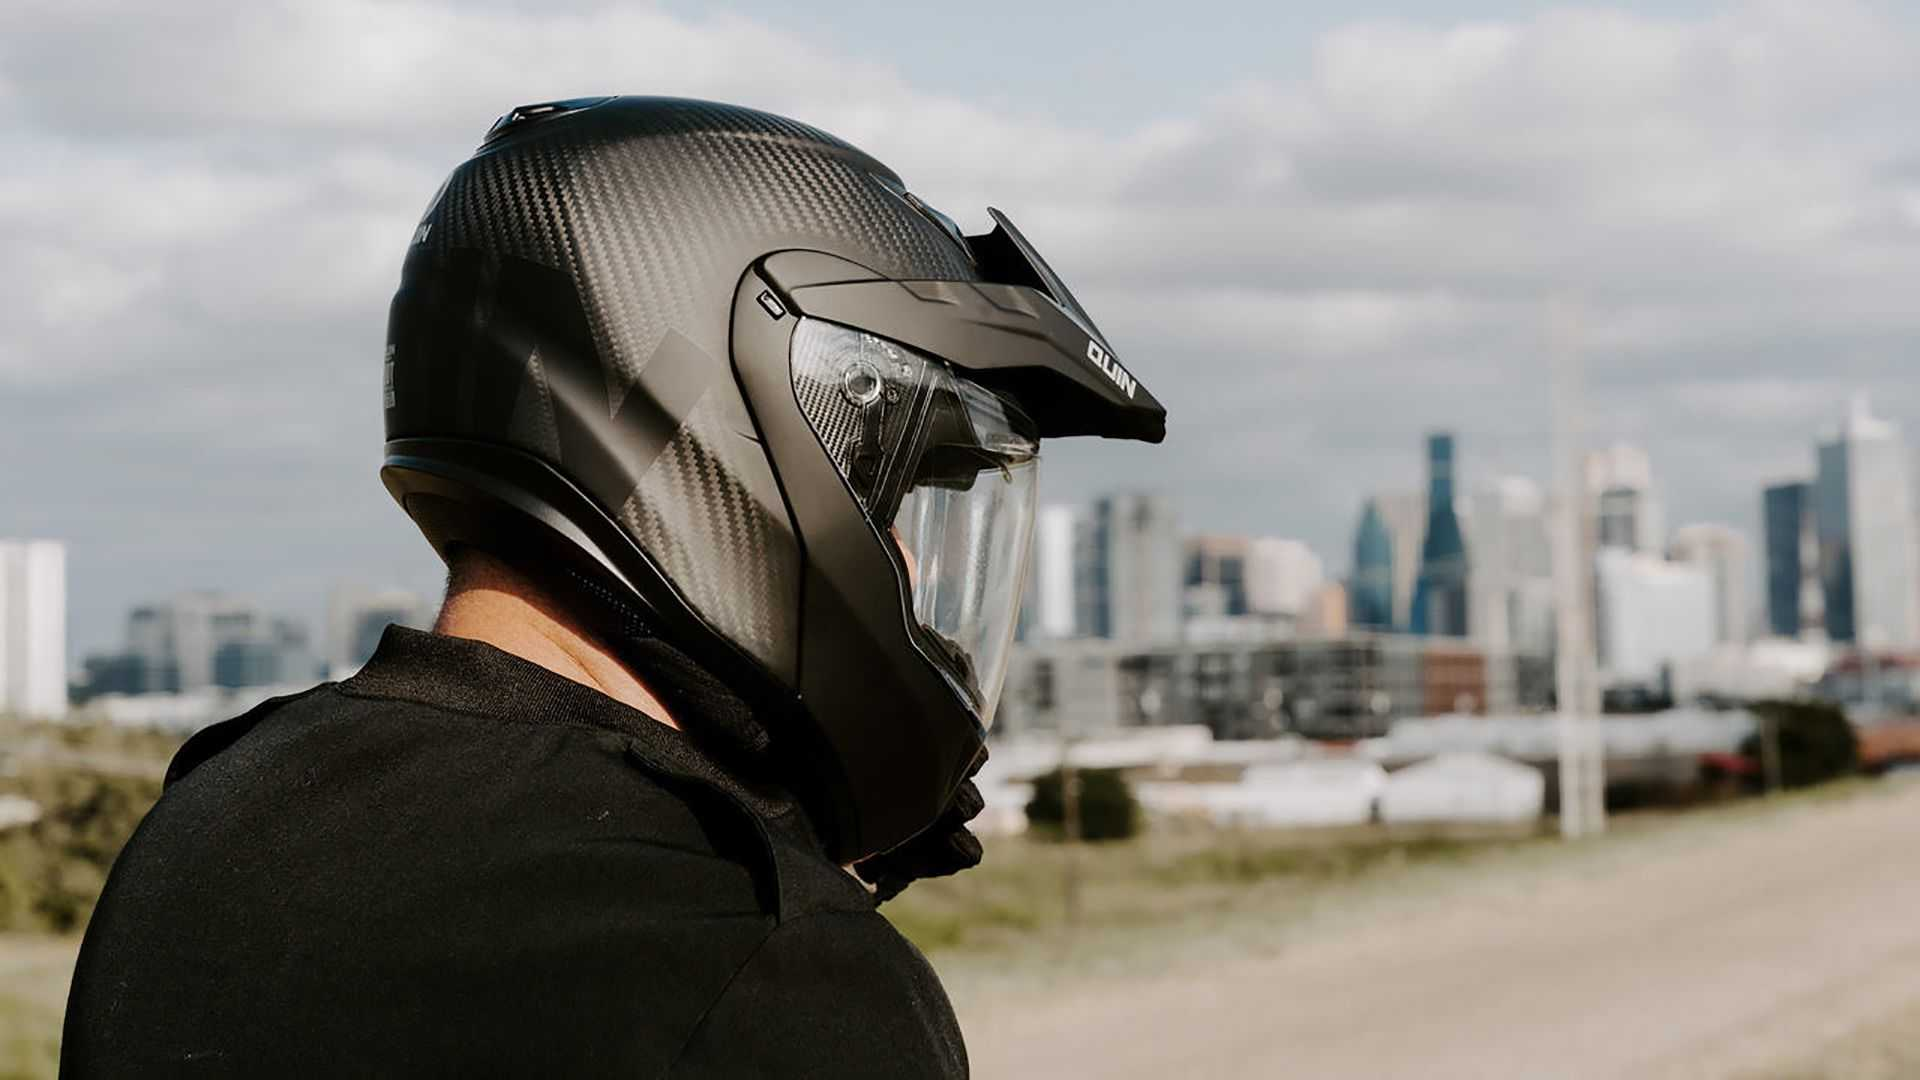 7 New Motorcycle Helmets To Check Out In 2021